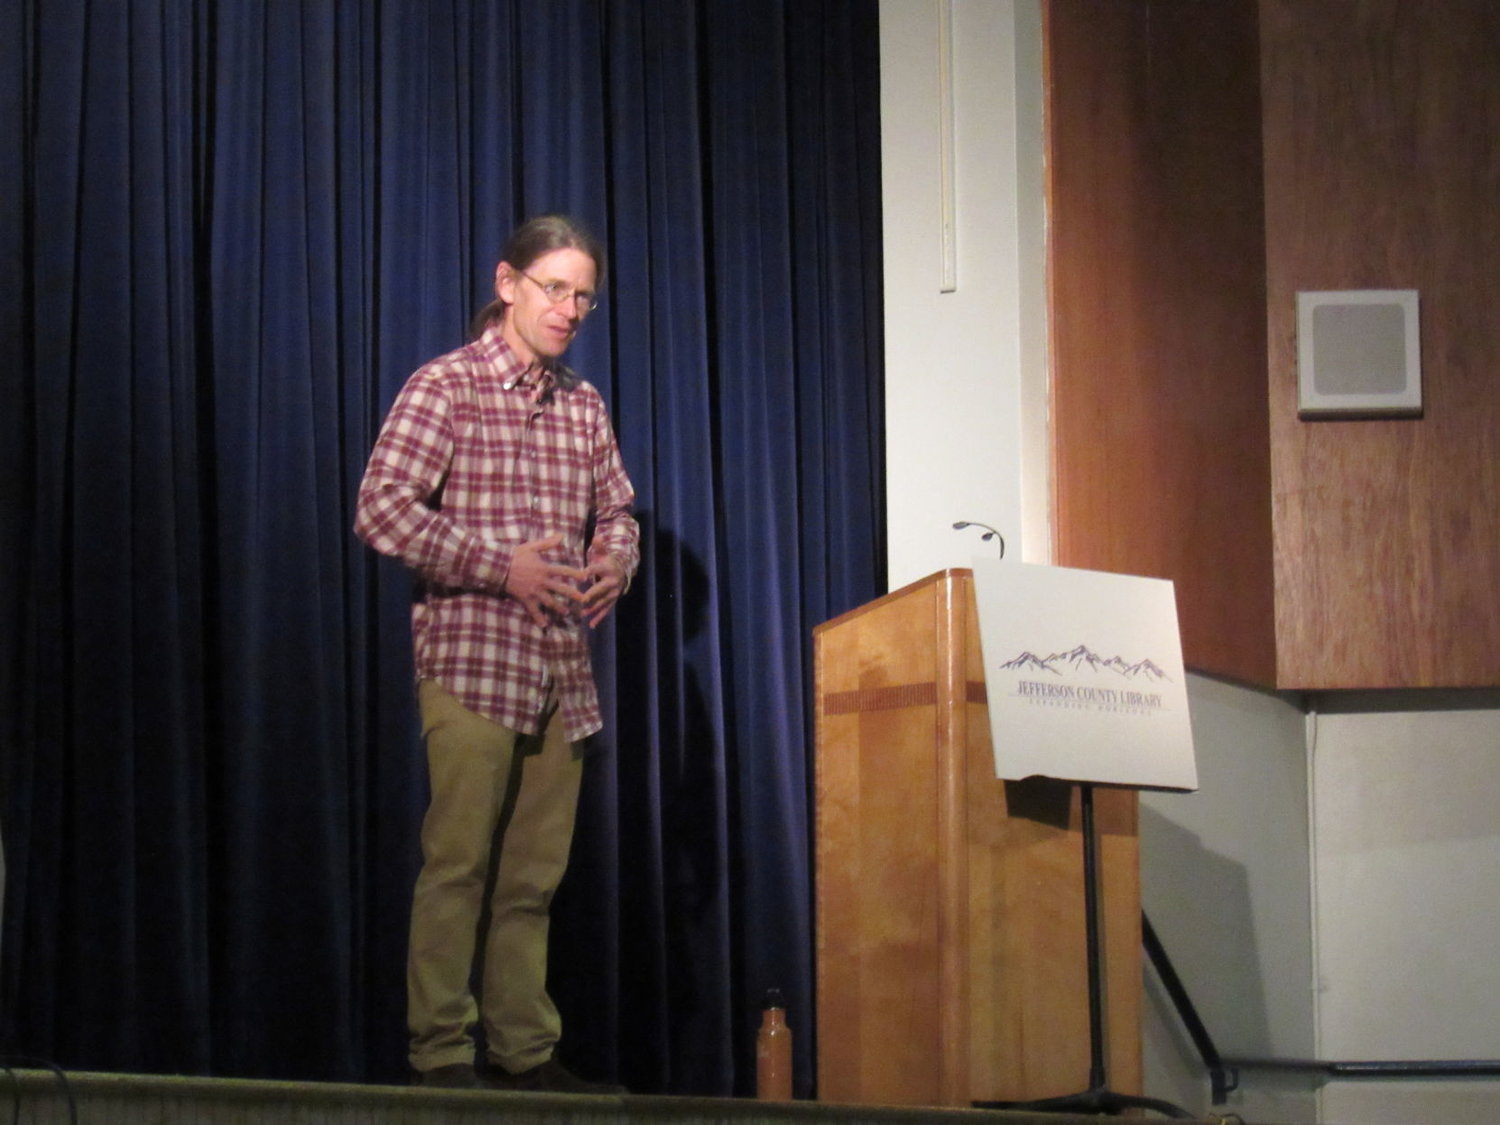 After a presentation about the smallest bits of nature during the annual Huntingford Humanities Lecture, author and biologist Thor Hanson addressed questions relating to bees, feathers and seeds.